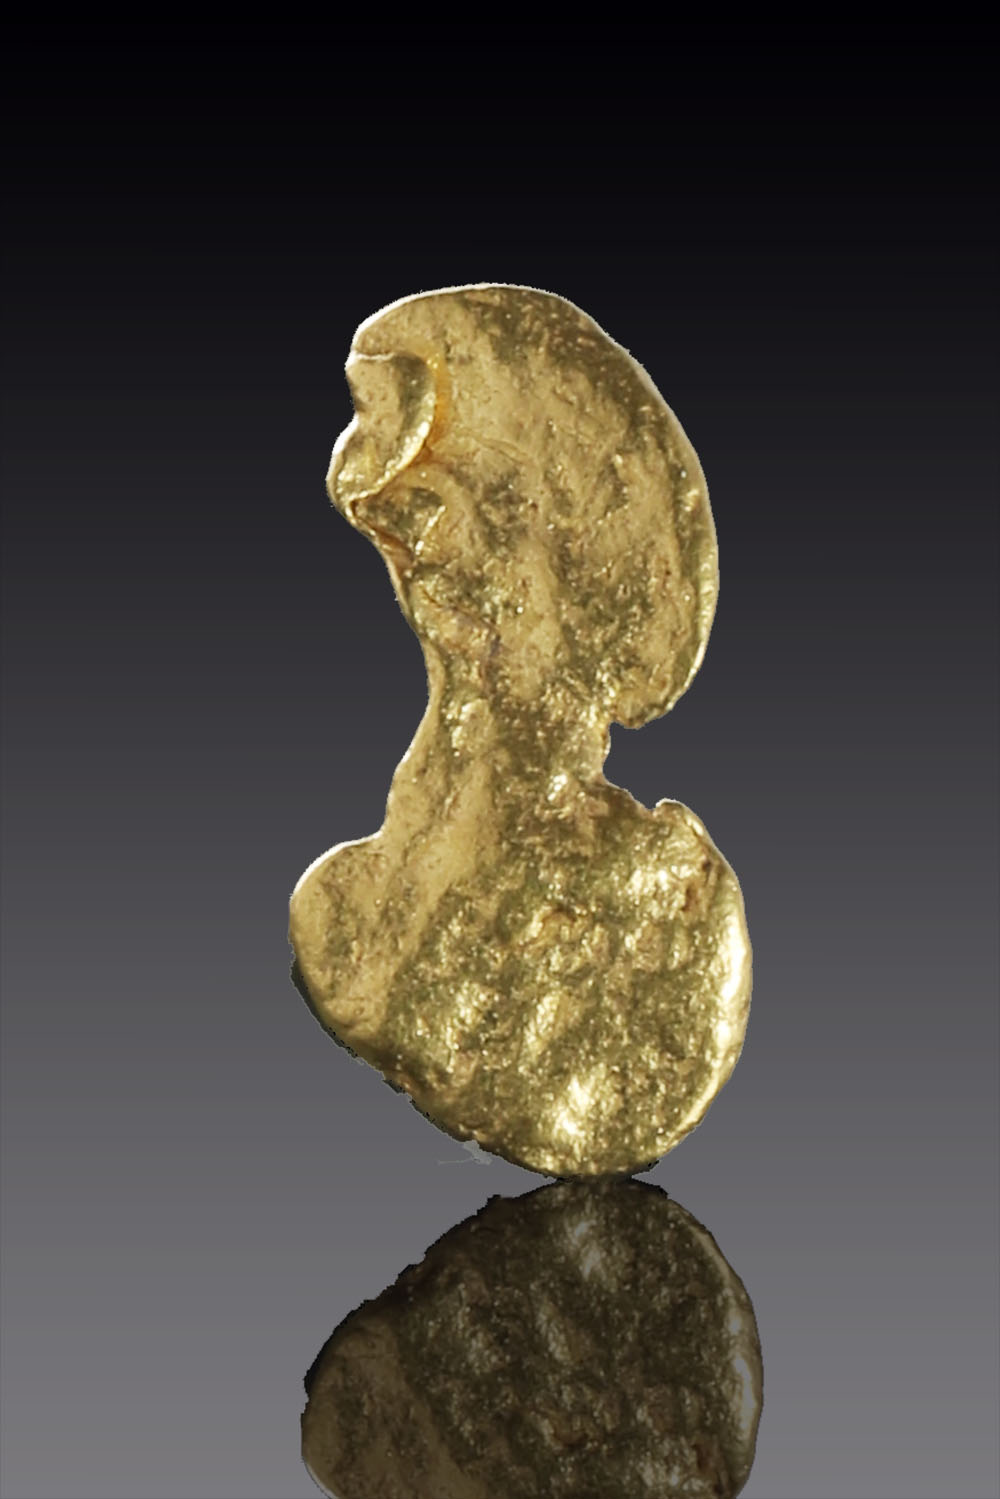 Hour Glass Shaped Natural Australain Gold Nugget